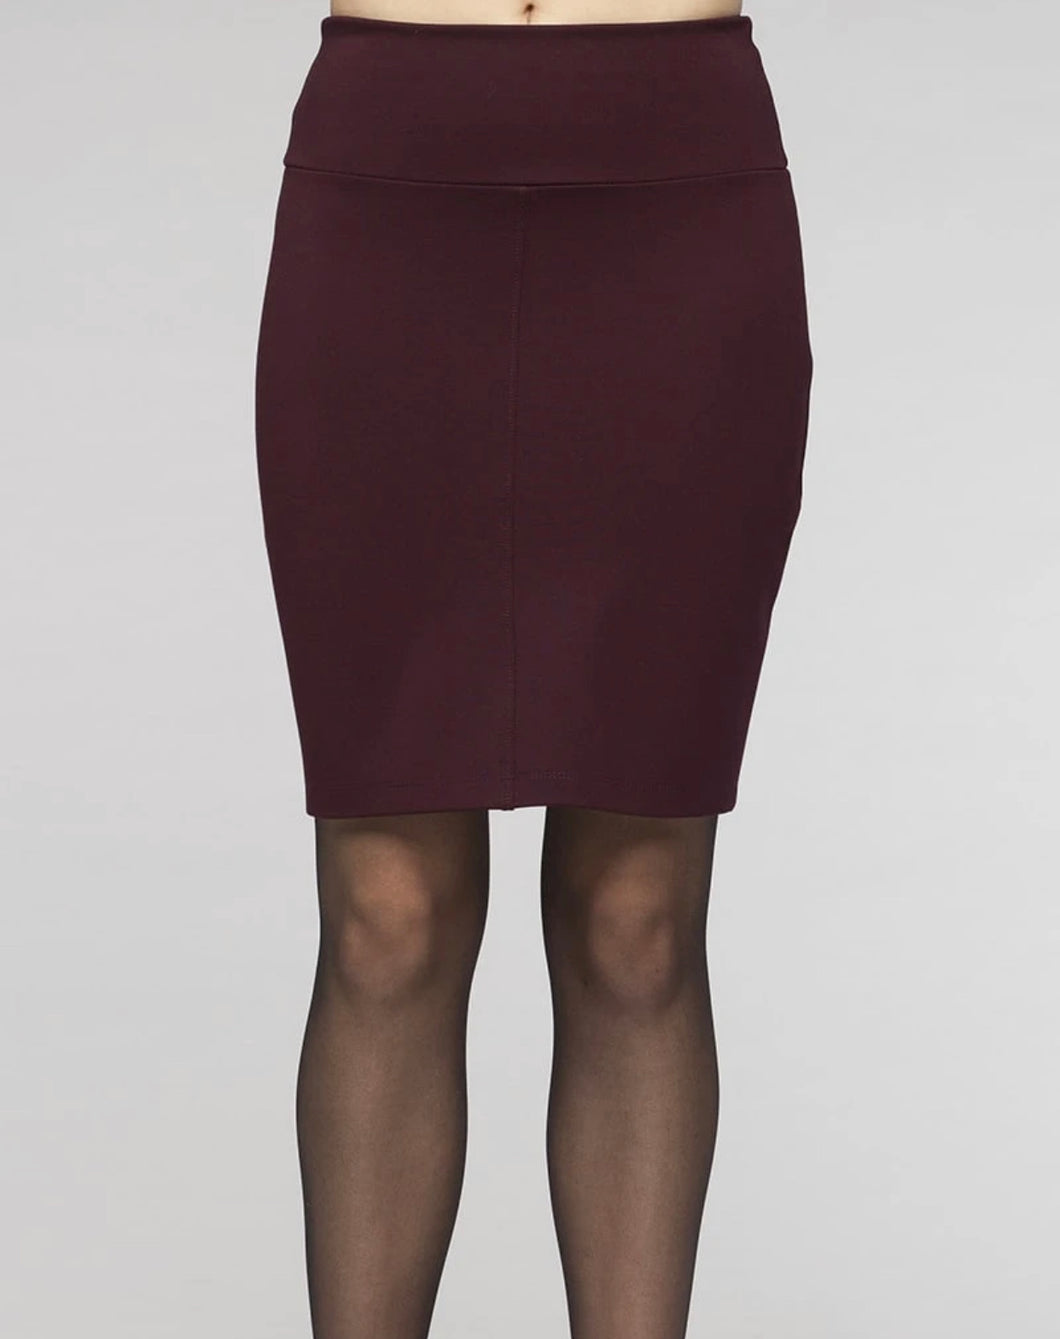 Dylan Skirt - Burgundy